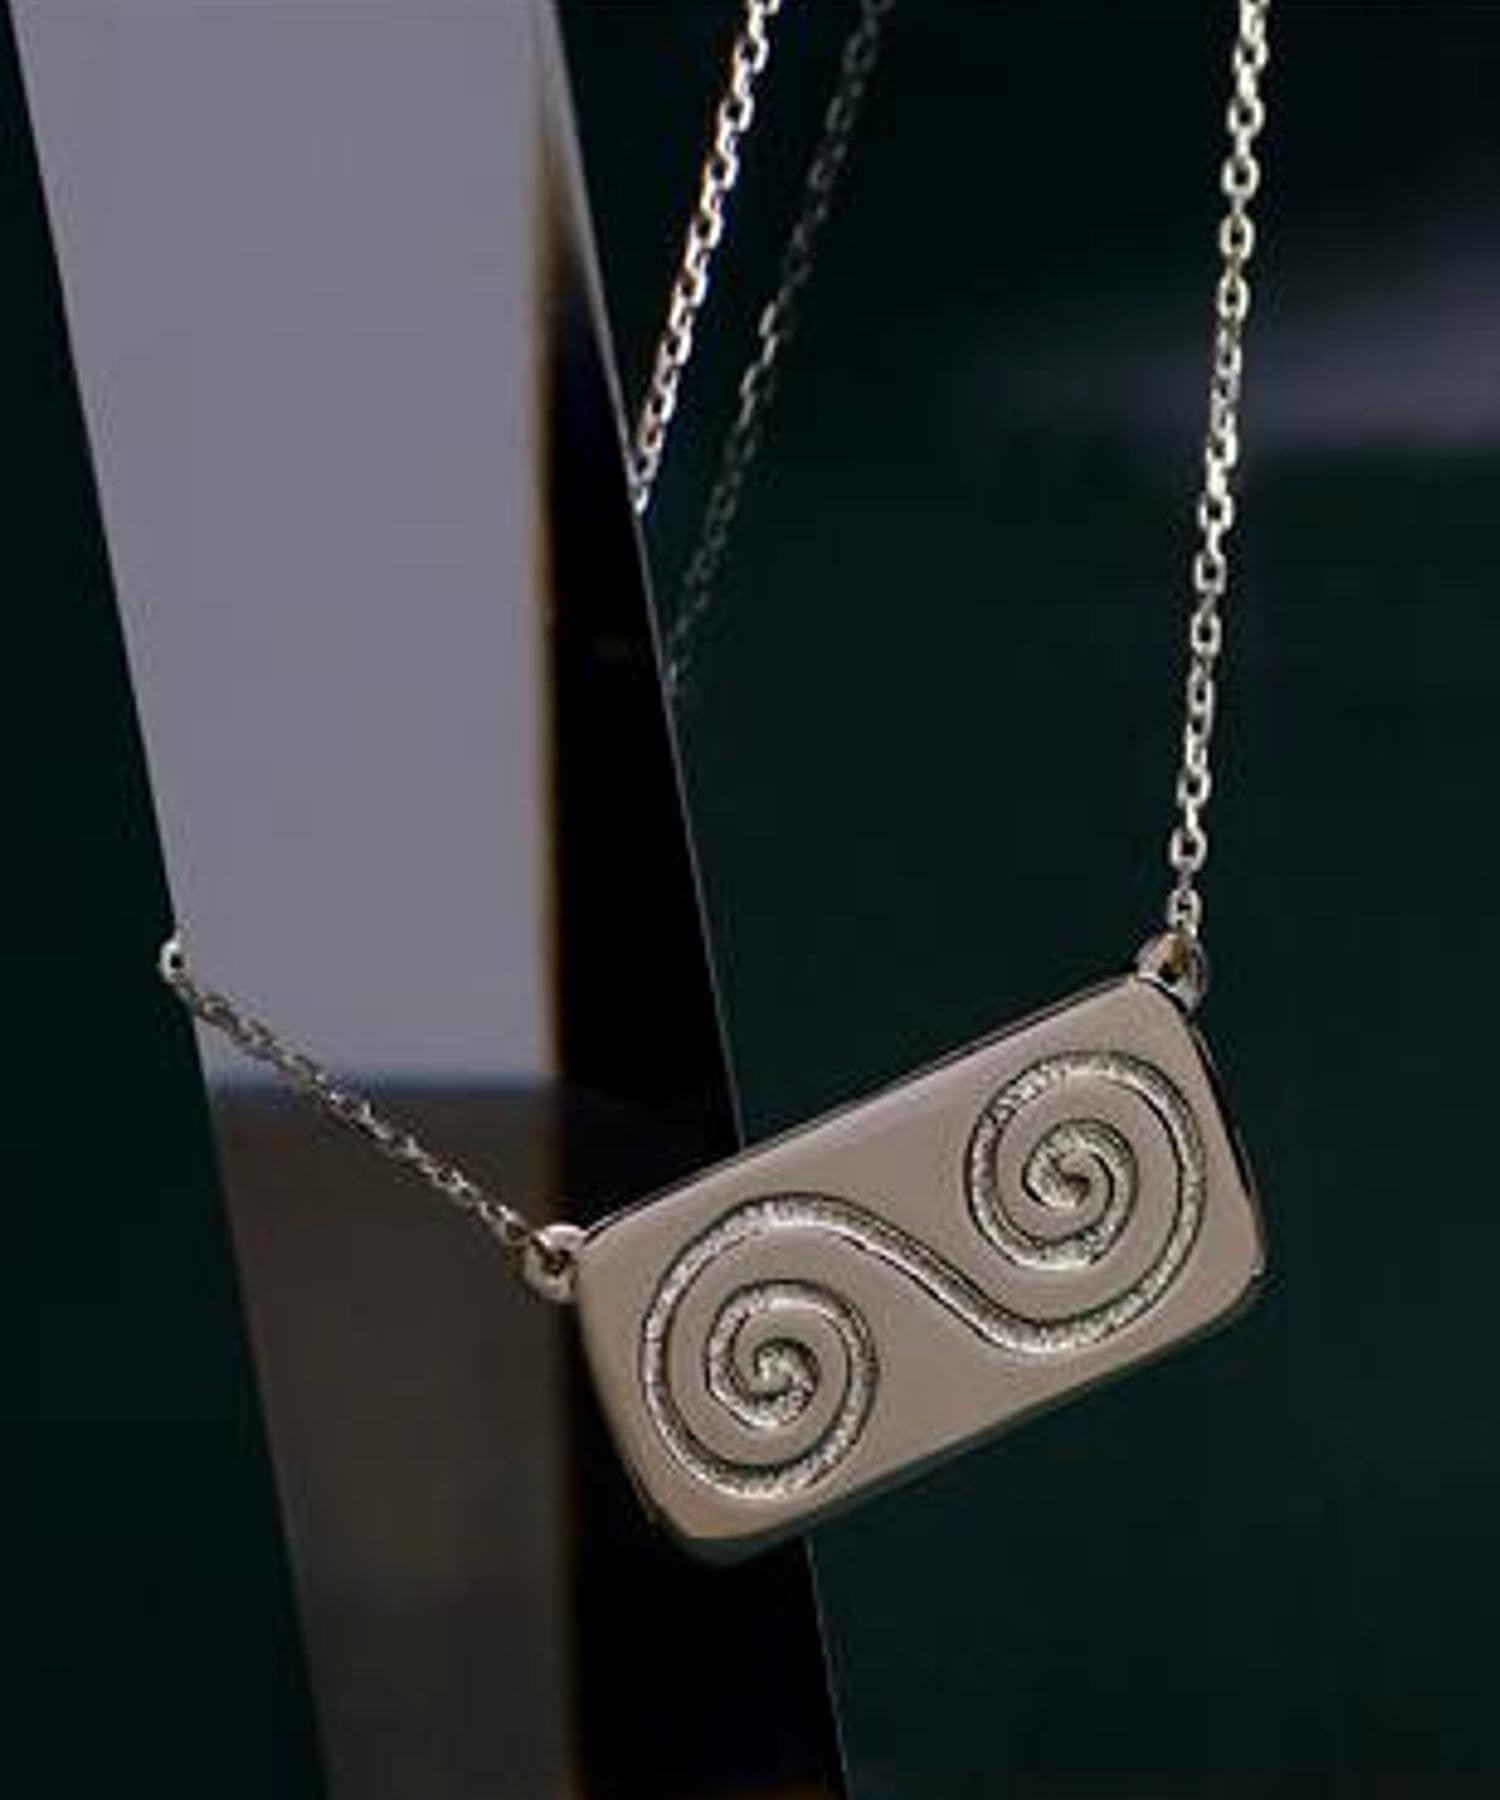 Growth - Silver Necklace - [Native] - Jewellery - Irish Gifts